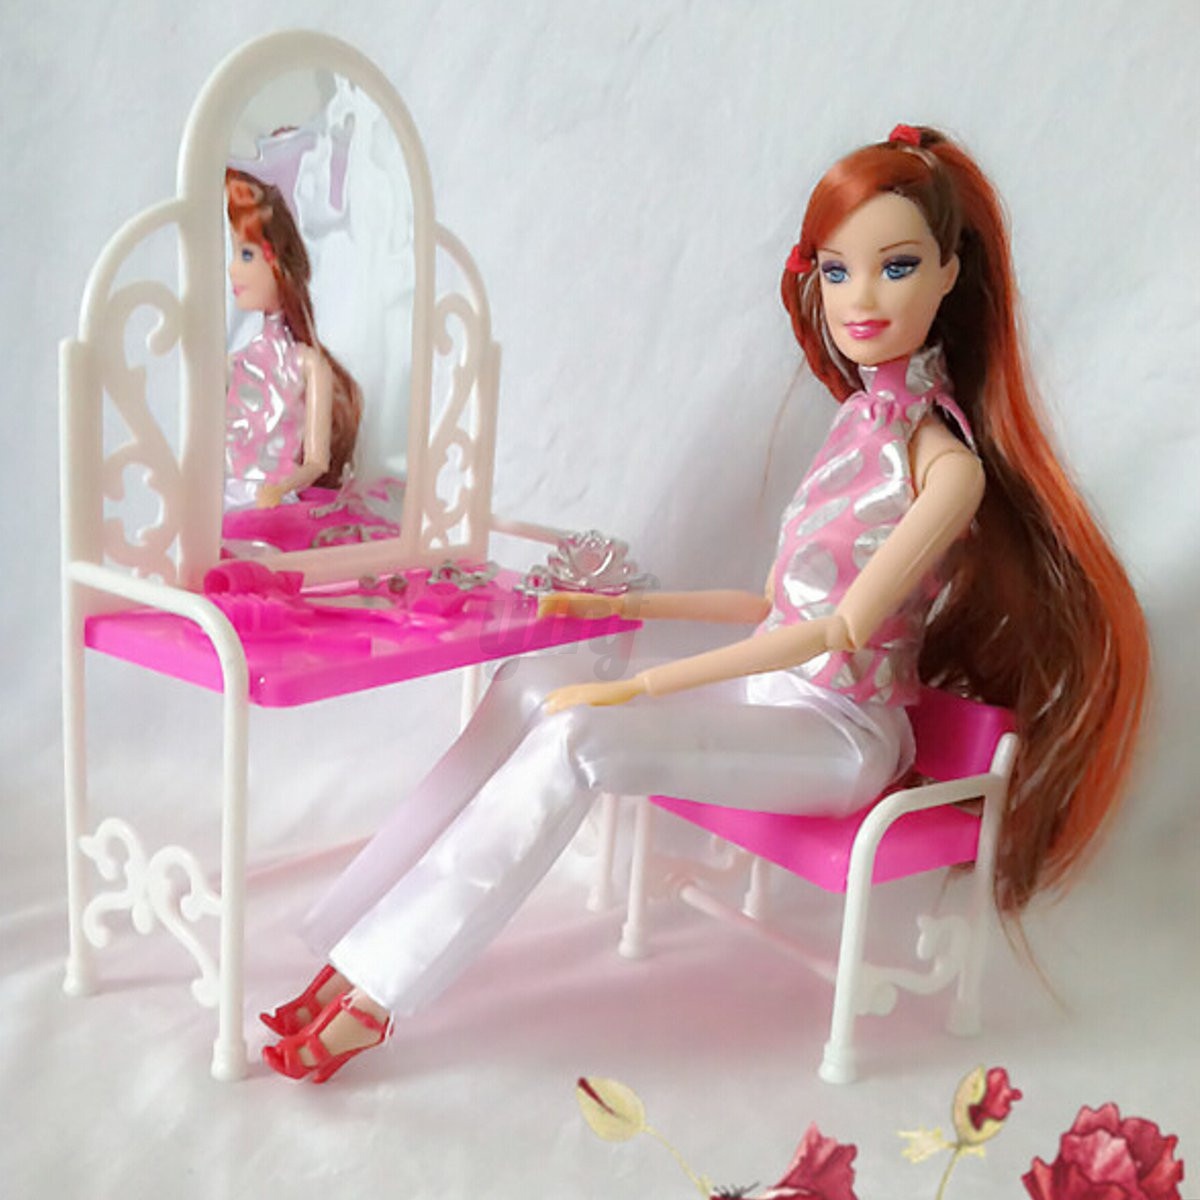 Dollhouse Miniature Furniture Accessories For Barbie Bathroom Living Room Toys | eBay